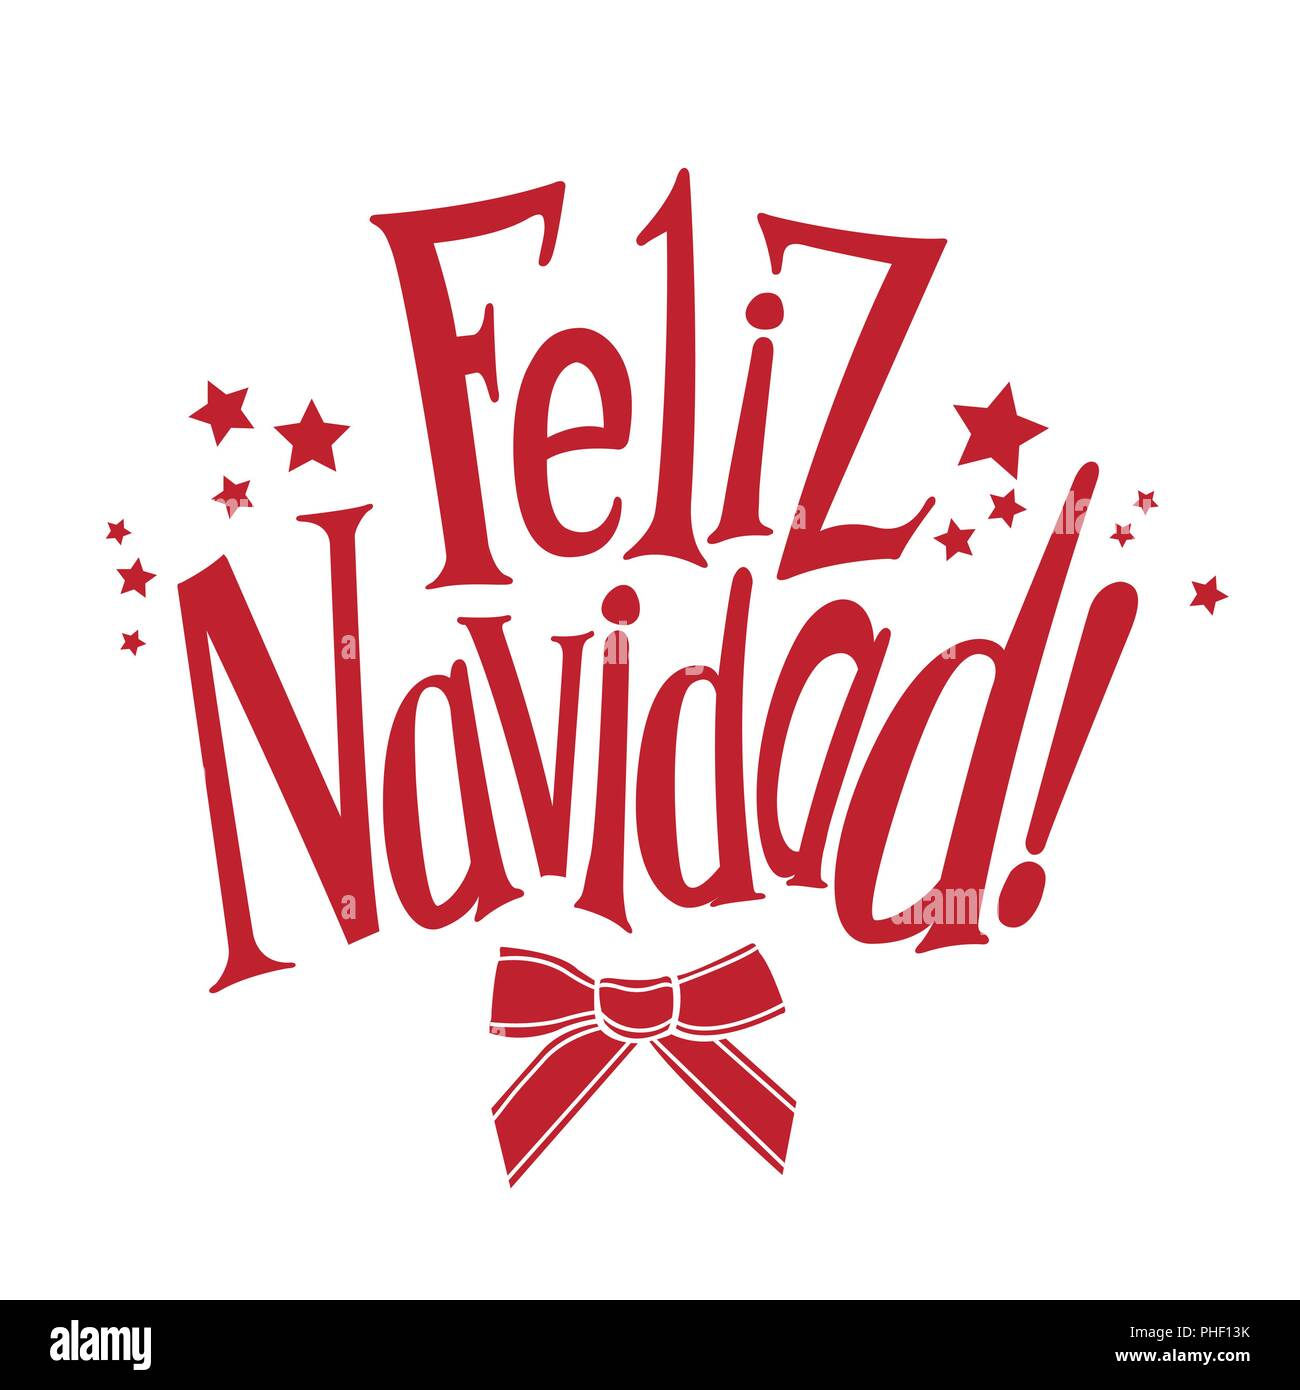 vector wishes a merry christmas in spanish feliz navidad